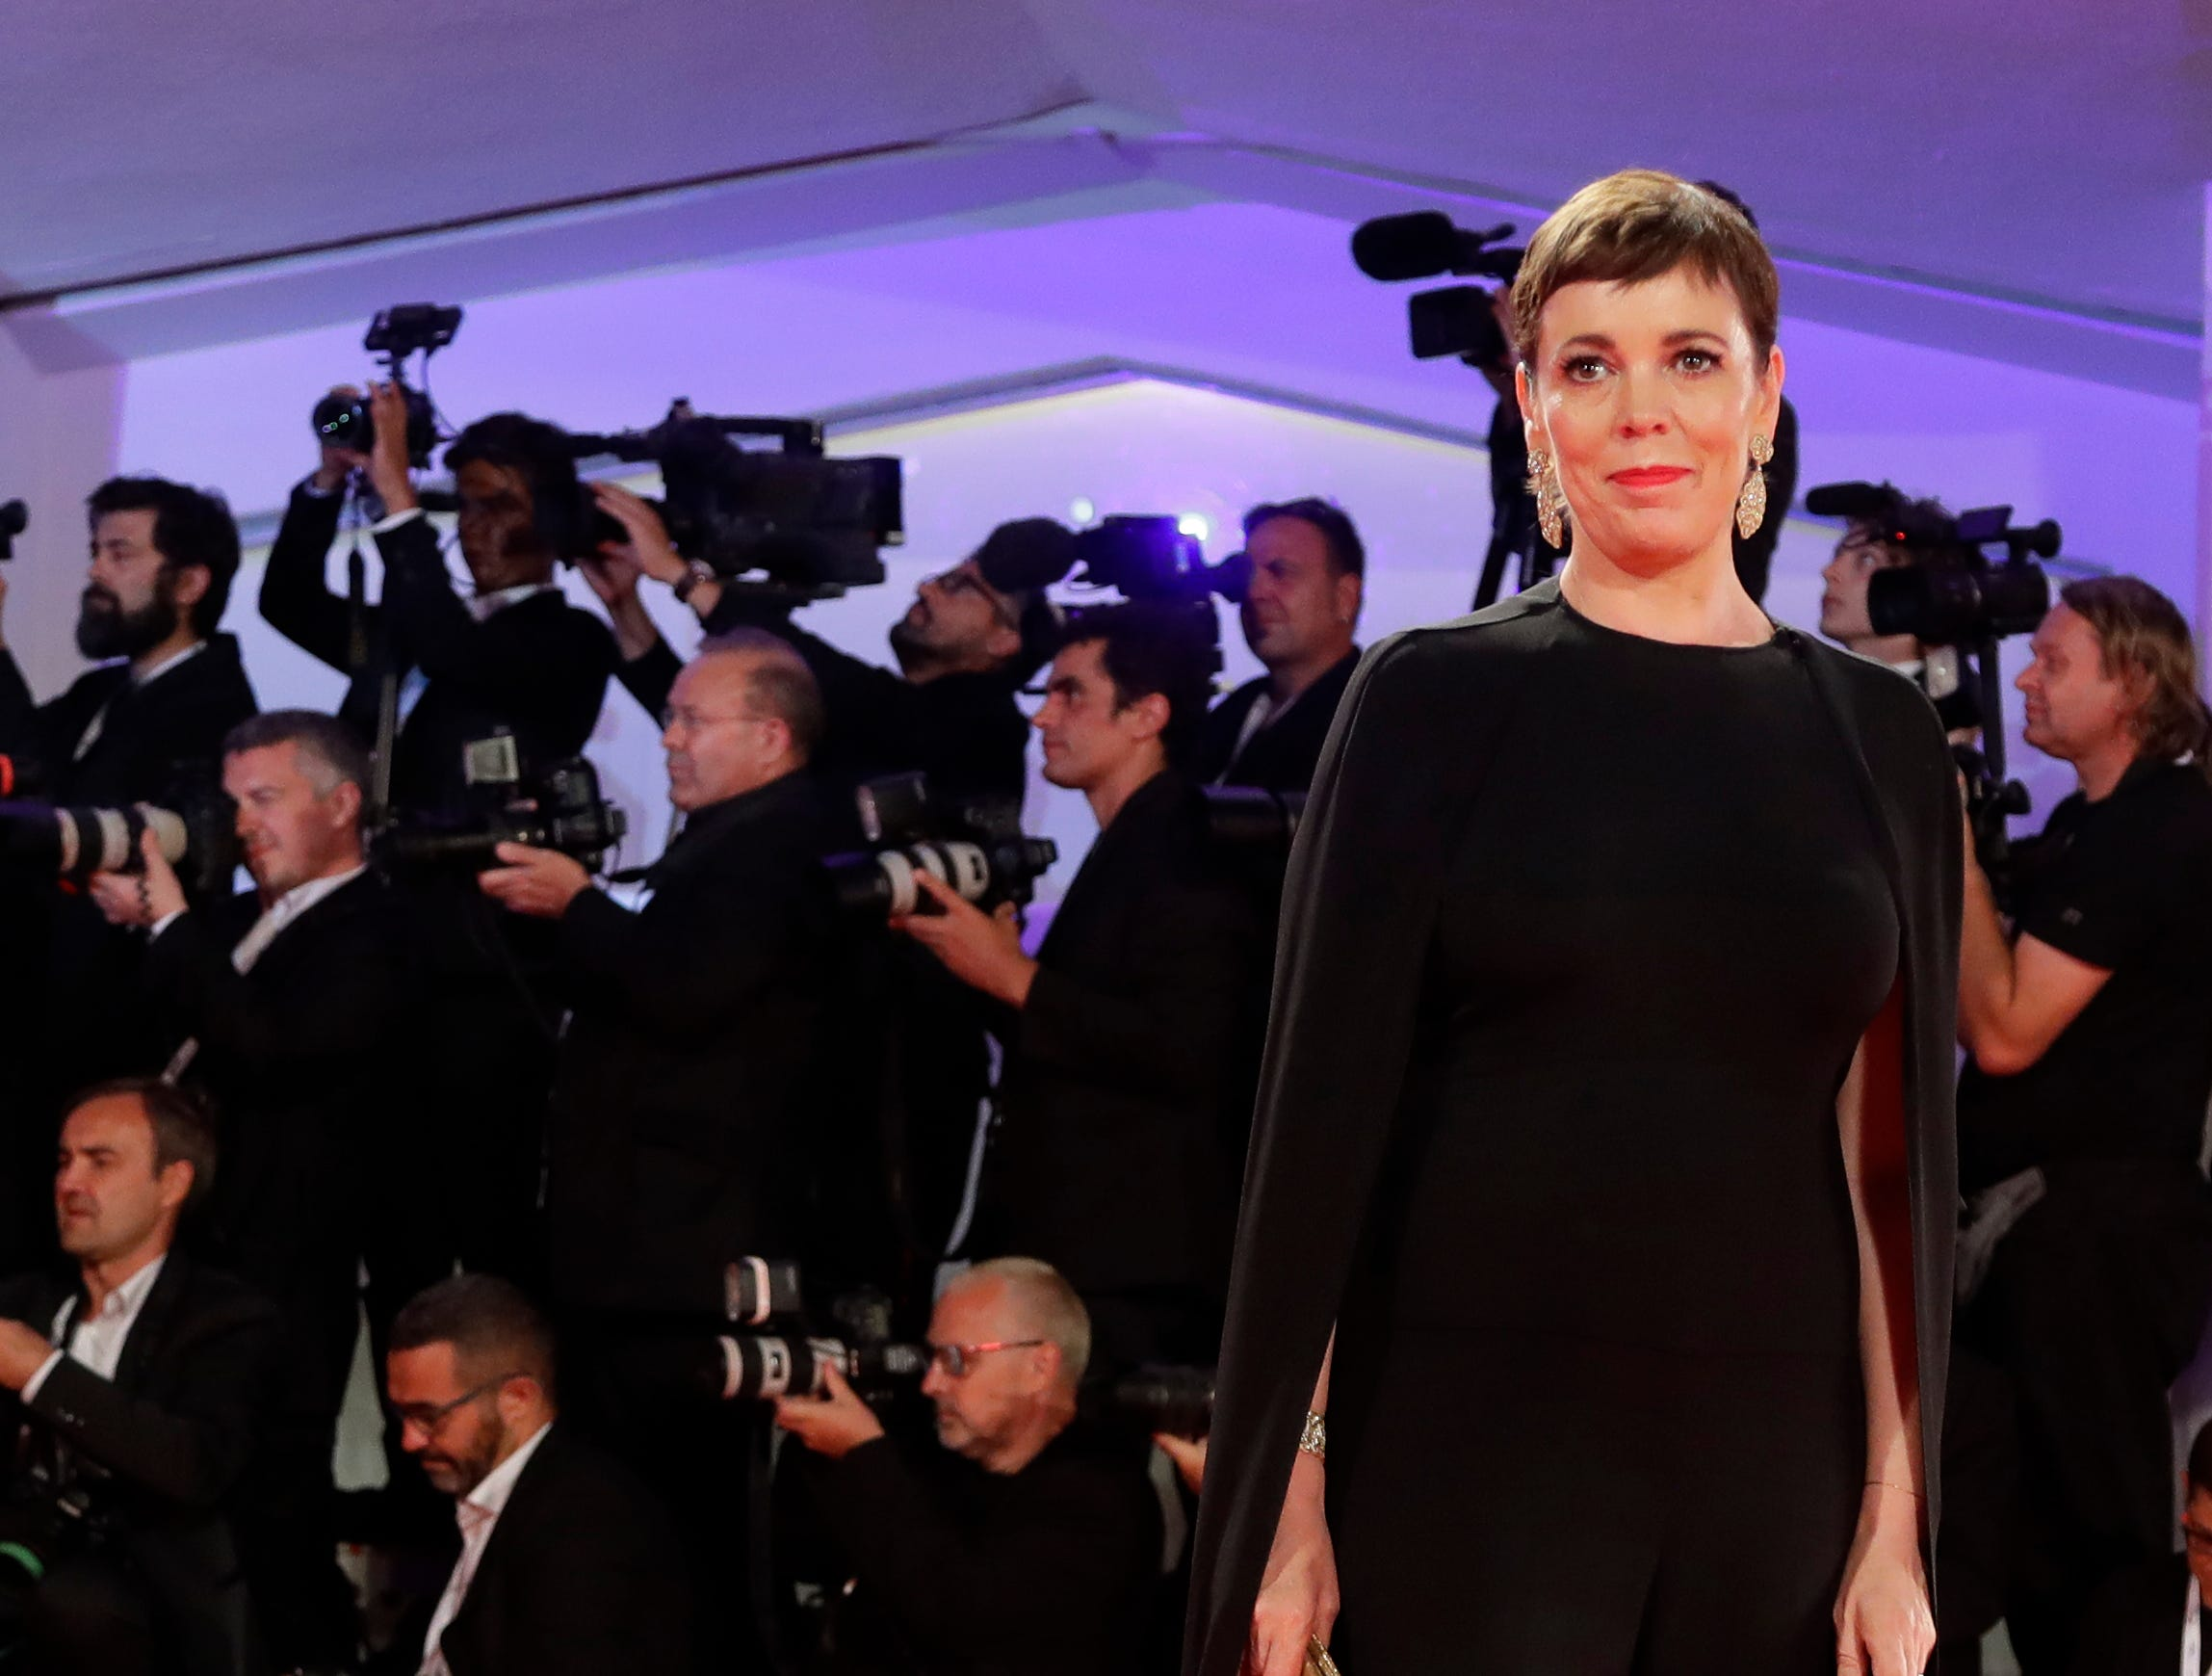 Actress Olivia Colman poses for photographers upon arrival at the premiere of the film 'The Favourite' at the 75th edition of the Venice Film Festival in Venice, Italy, Thursday, Aug. 30 , 2018.